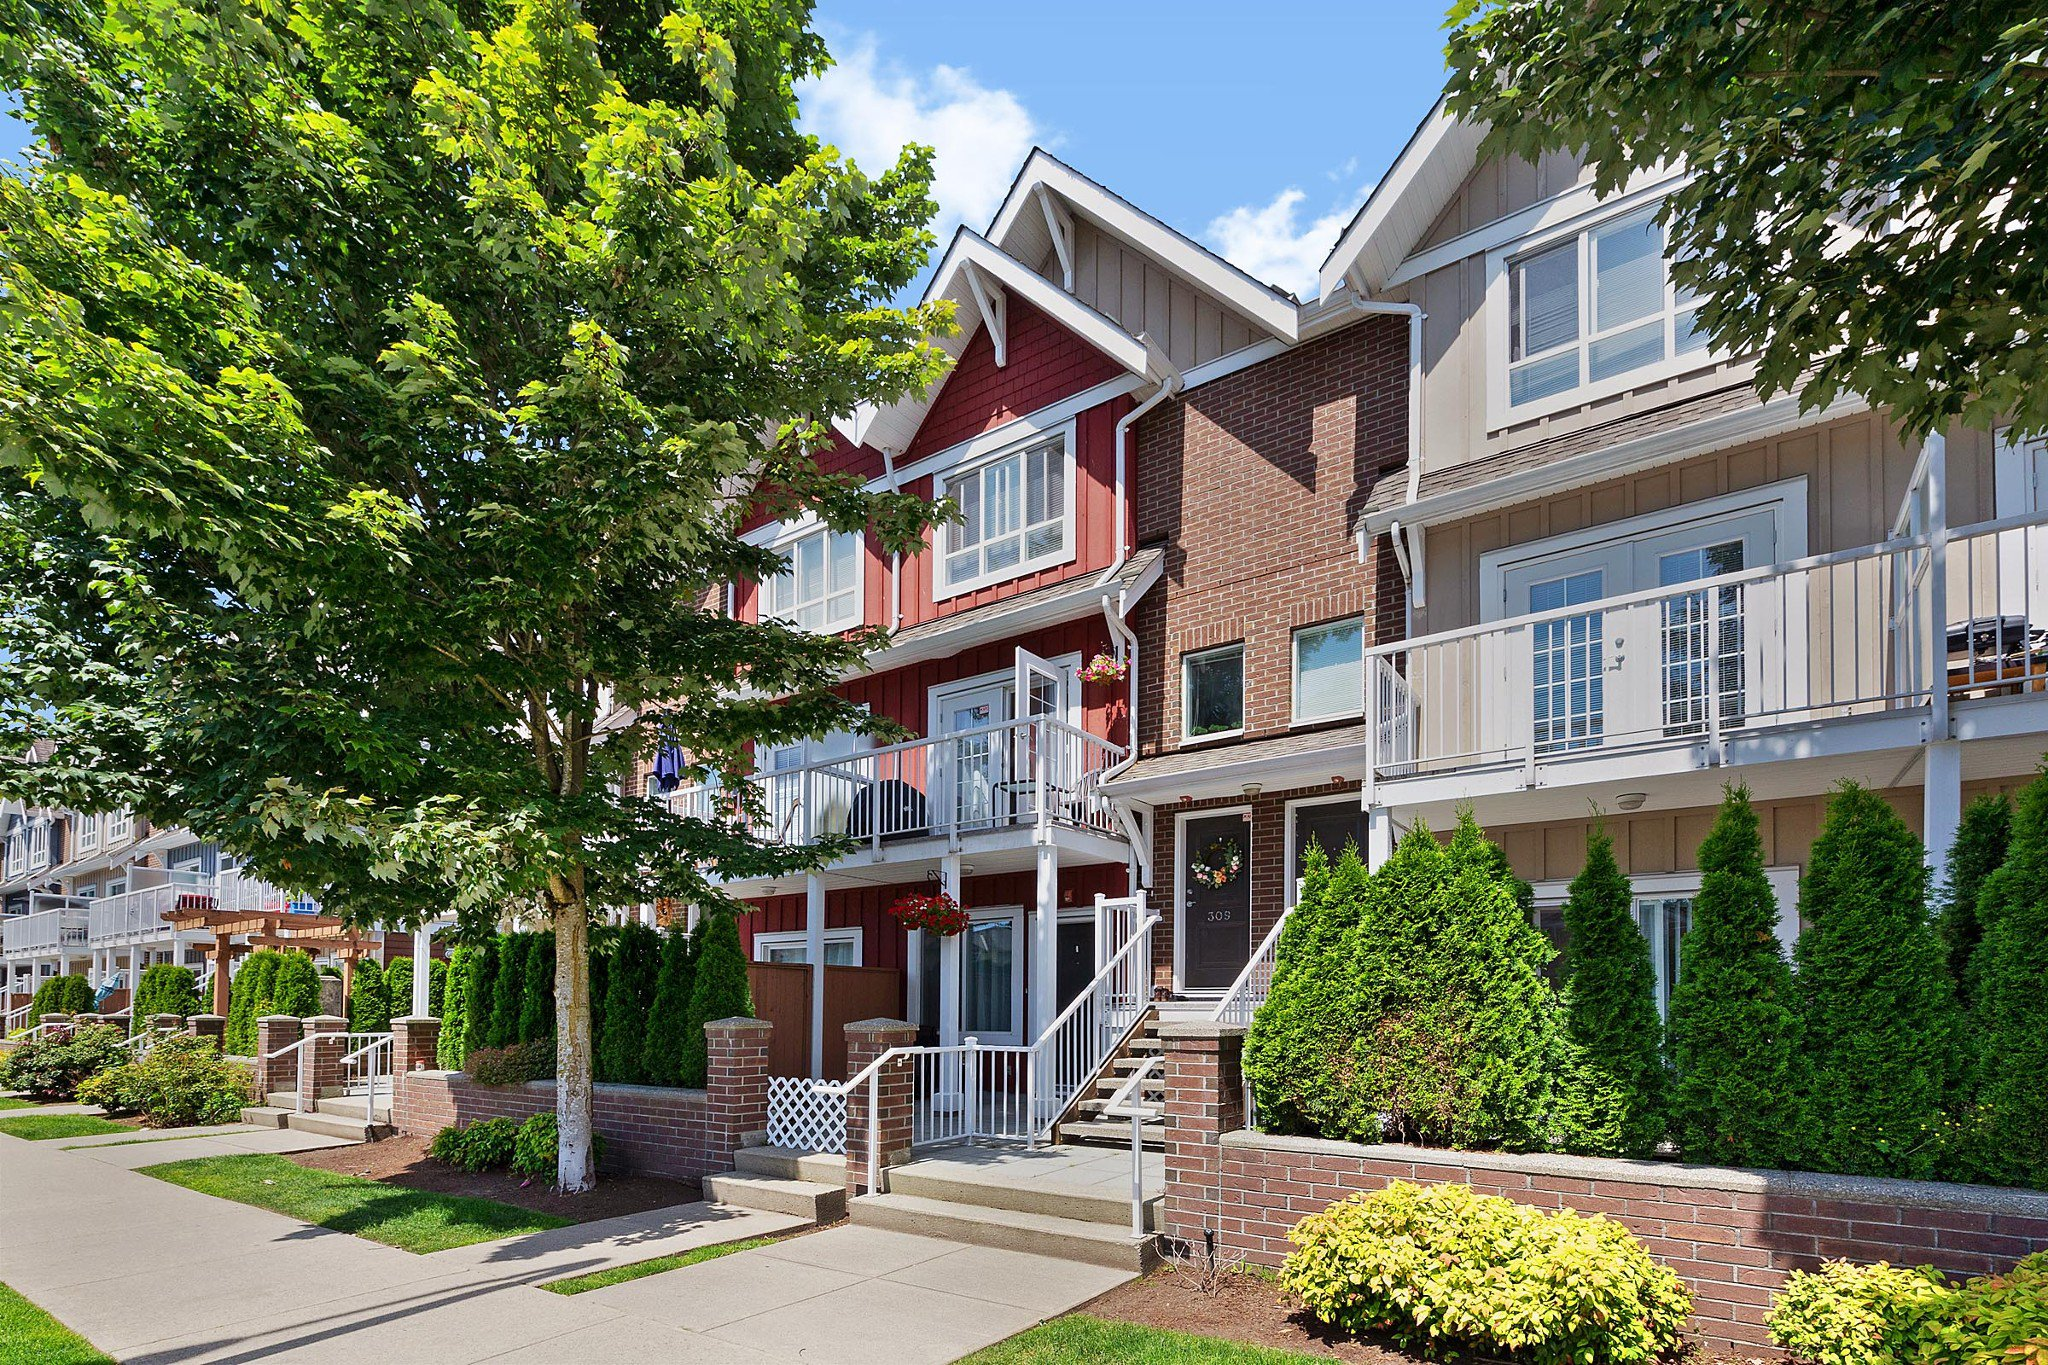 Main Photo: 309 1661 FRASER Avenue in Port Coquitlam: Glenwood PQ Townhouse for sale : MLS®# R2476544